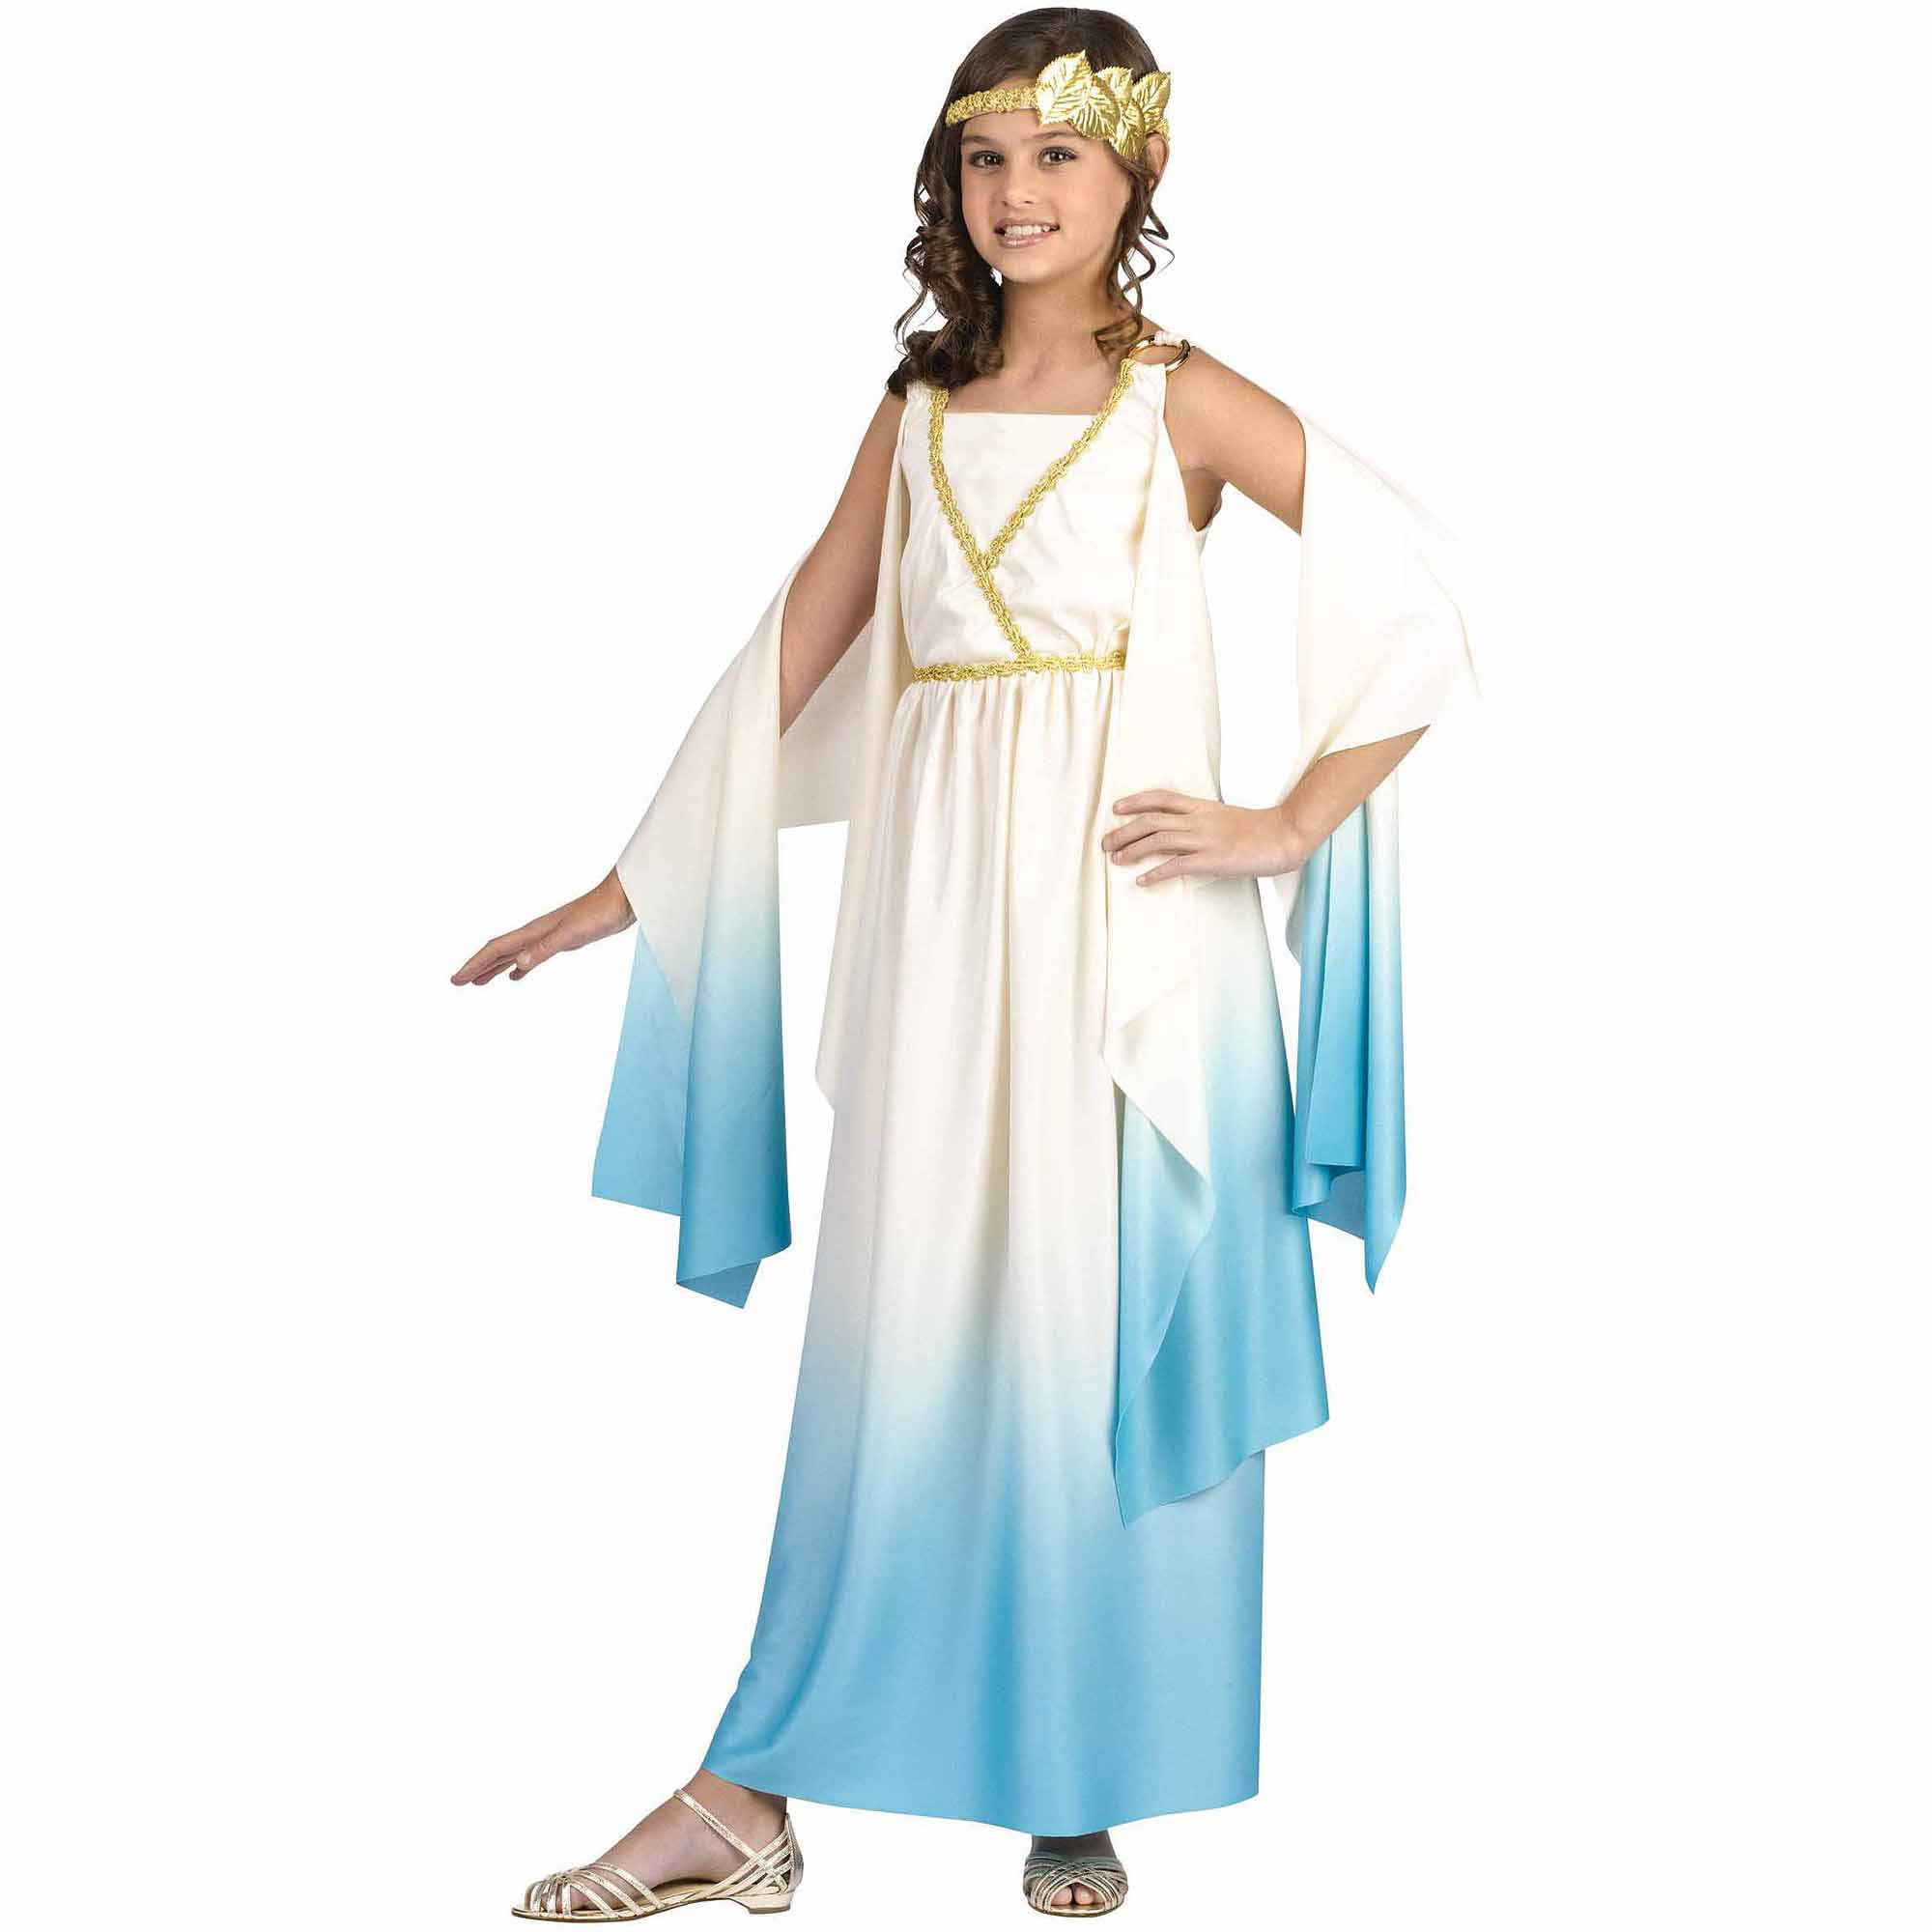 greek goddess child halloween costume - walmart